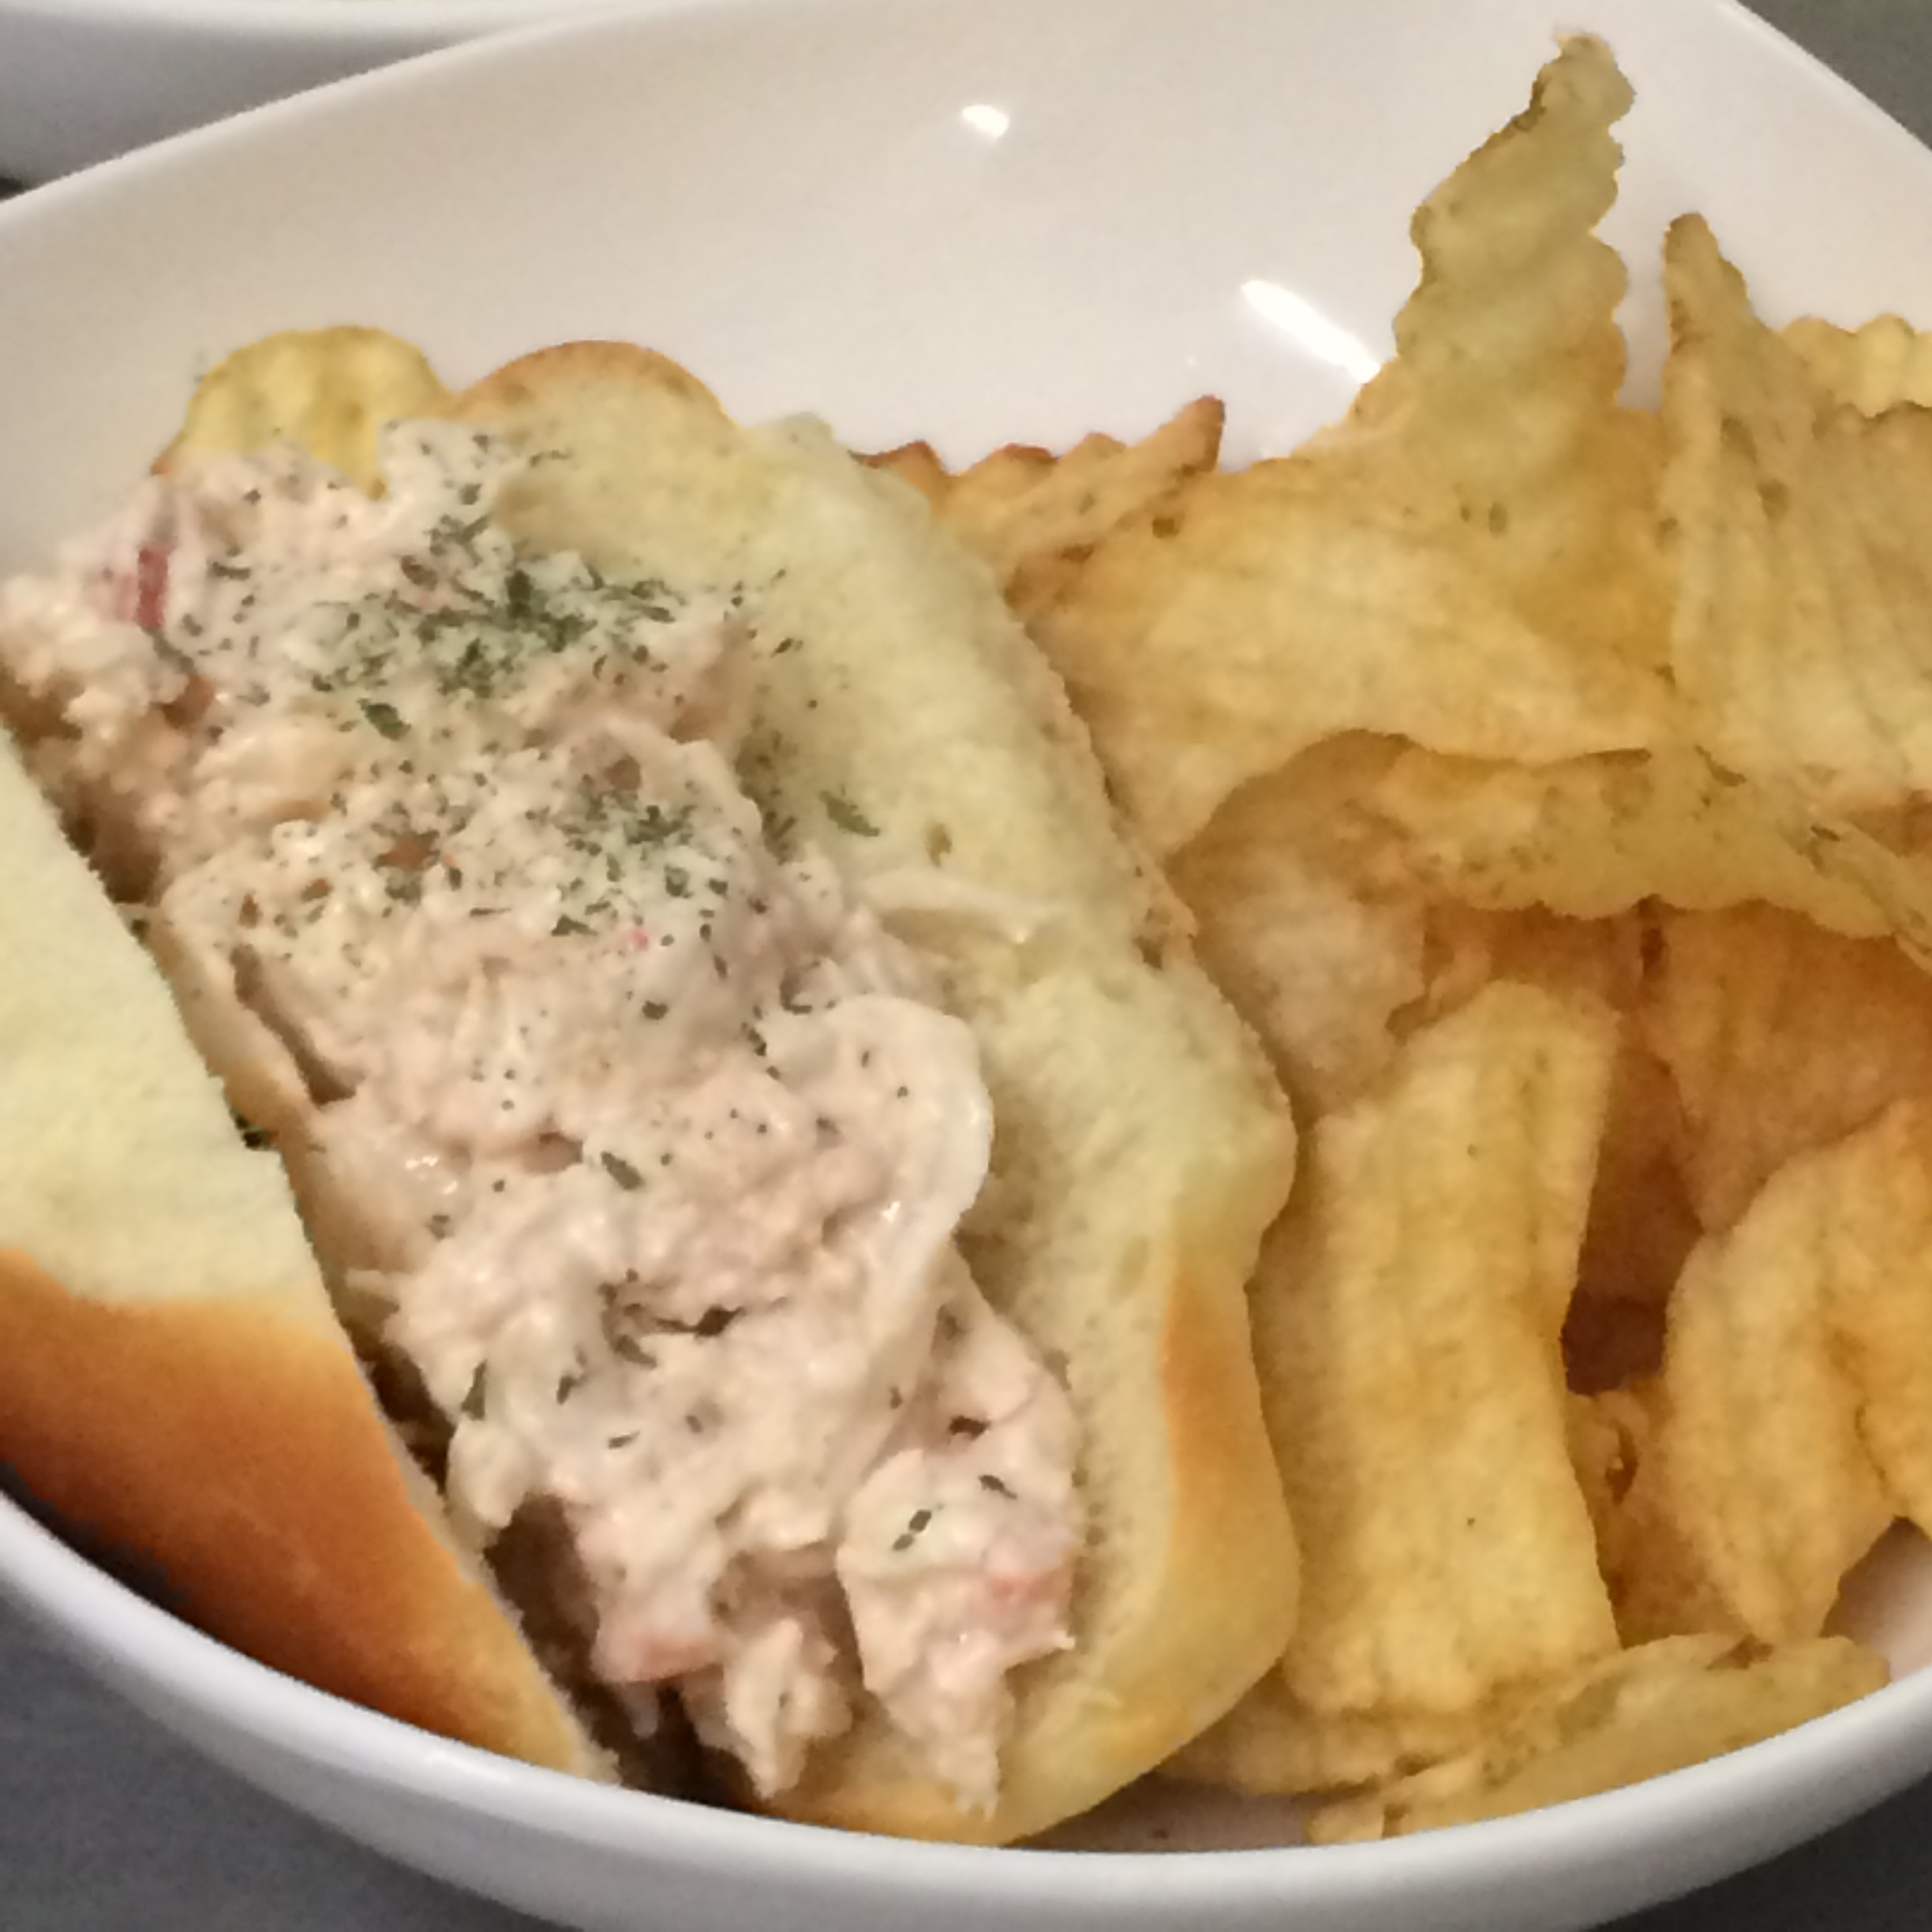 Mini lobster roll small plates served with gourmet kettle chips Gourmet Small Plates by LeCroissant Catering & Events Gourmet Small Plates by LeCroissant Catering & Events 2015 07 30 18